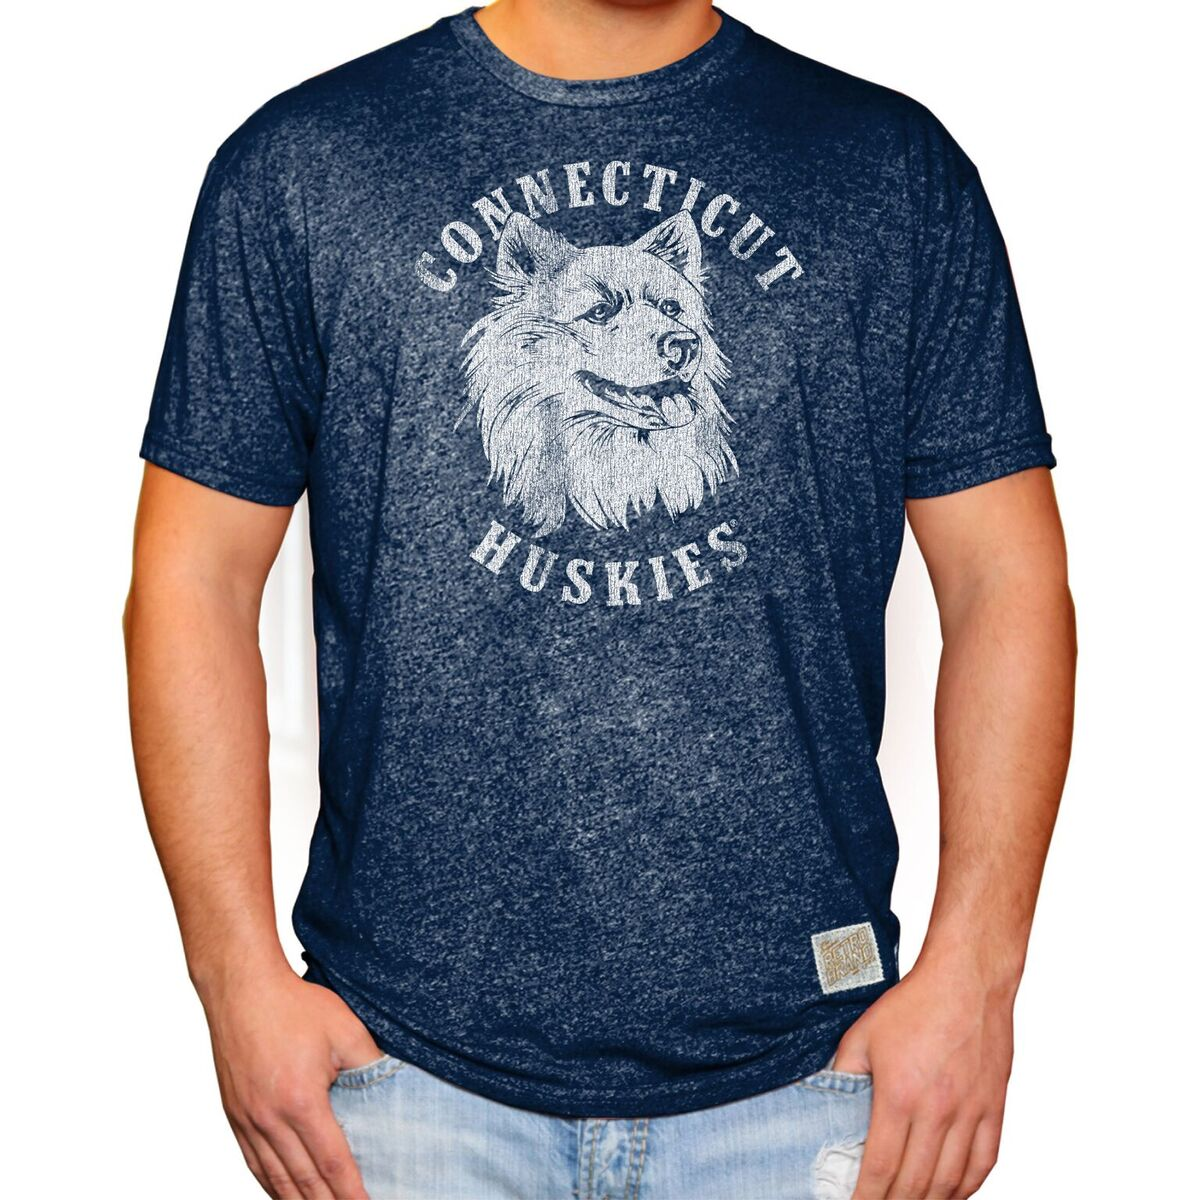 UCONN Huskies Men's Short Sleeve Mock Twist Tee